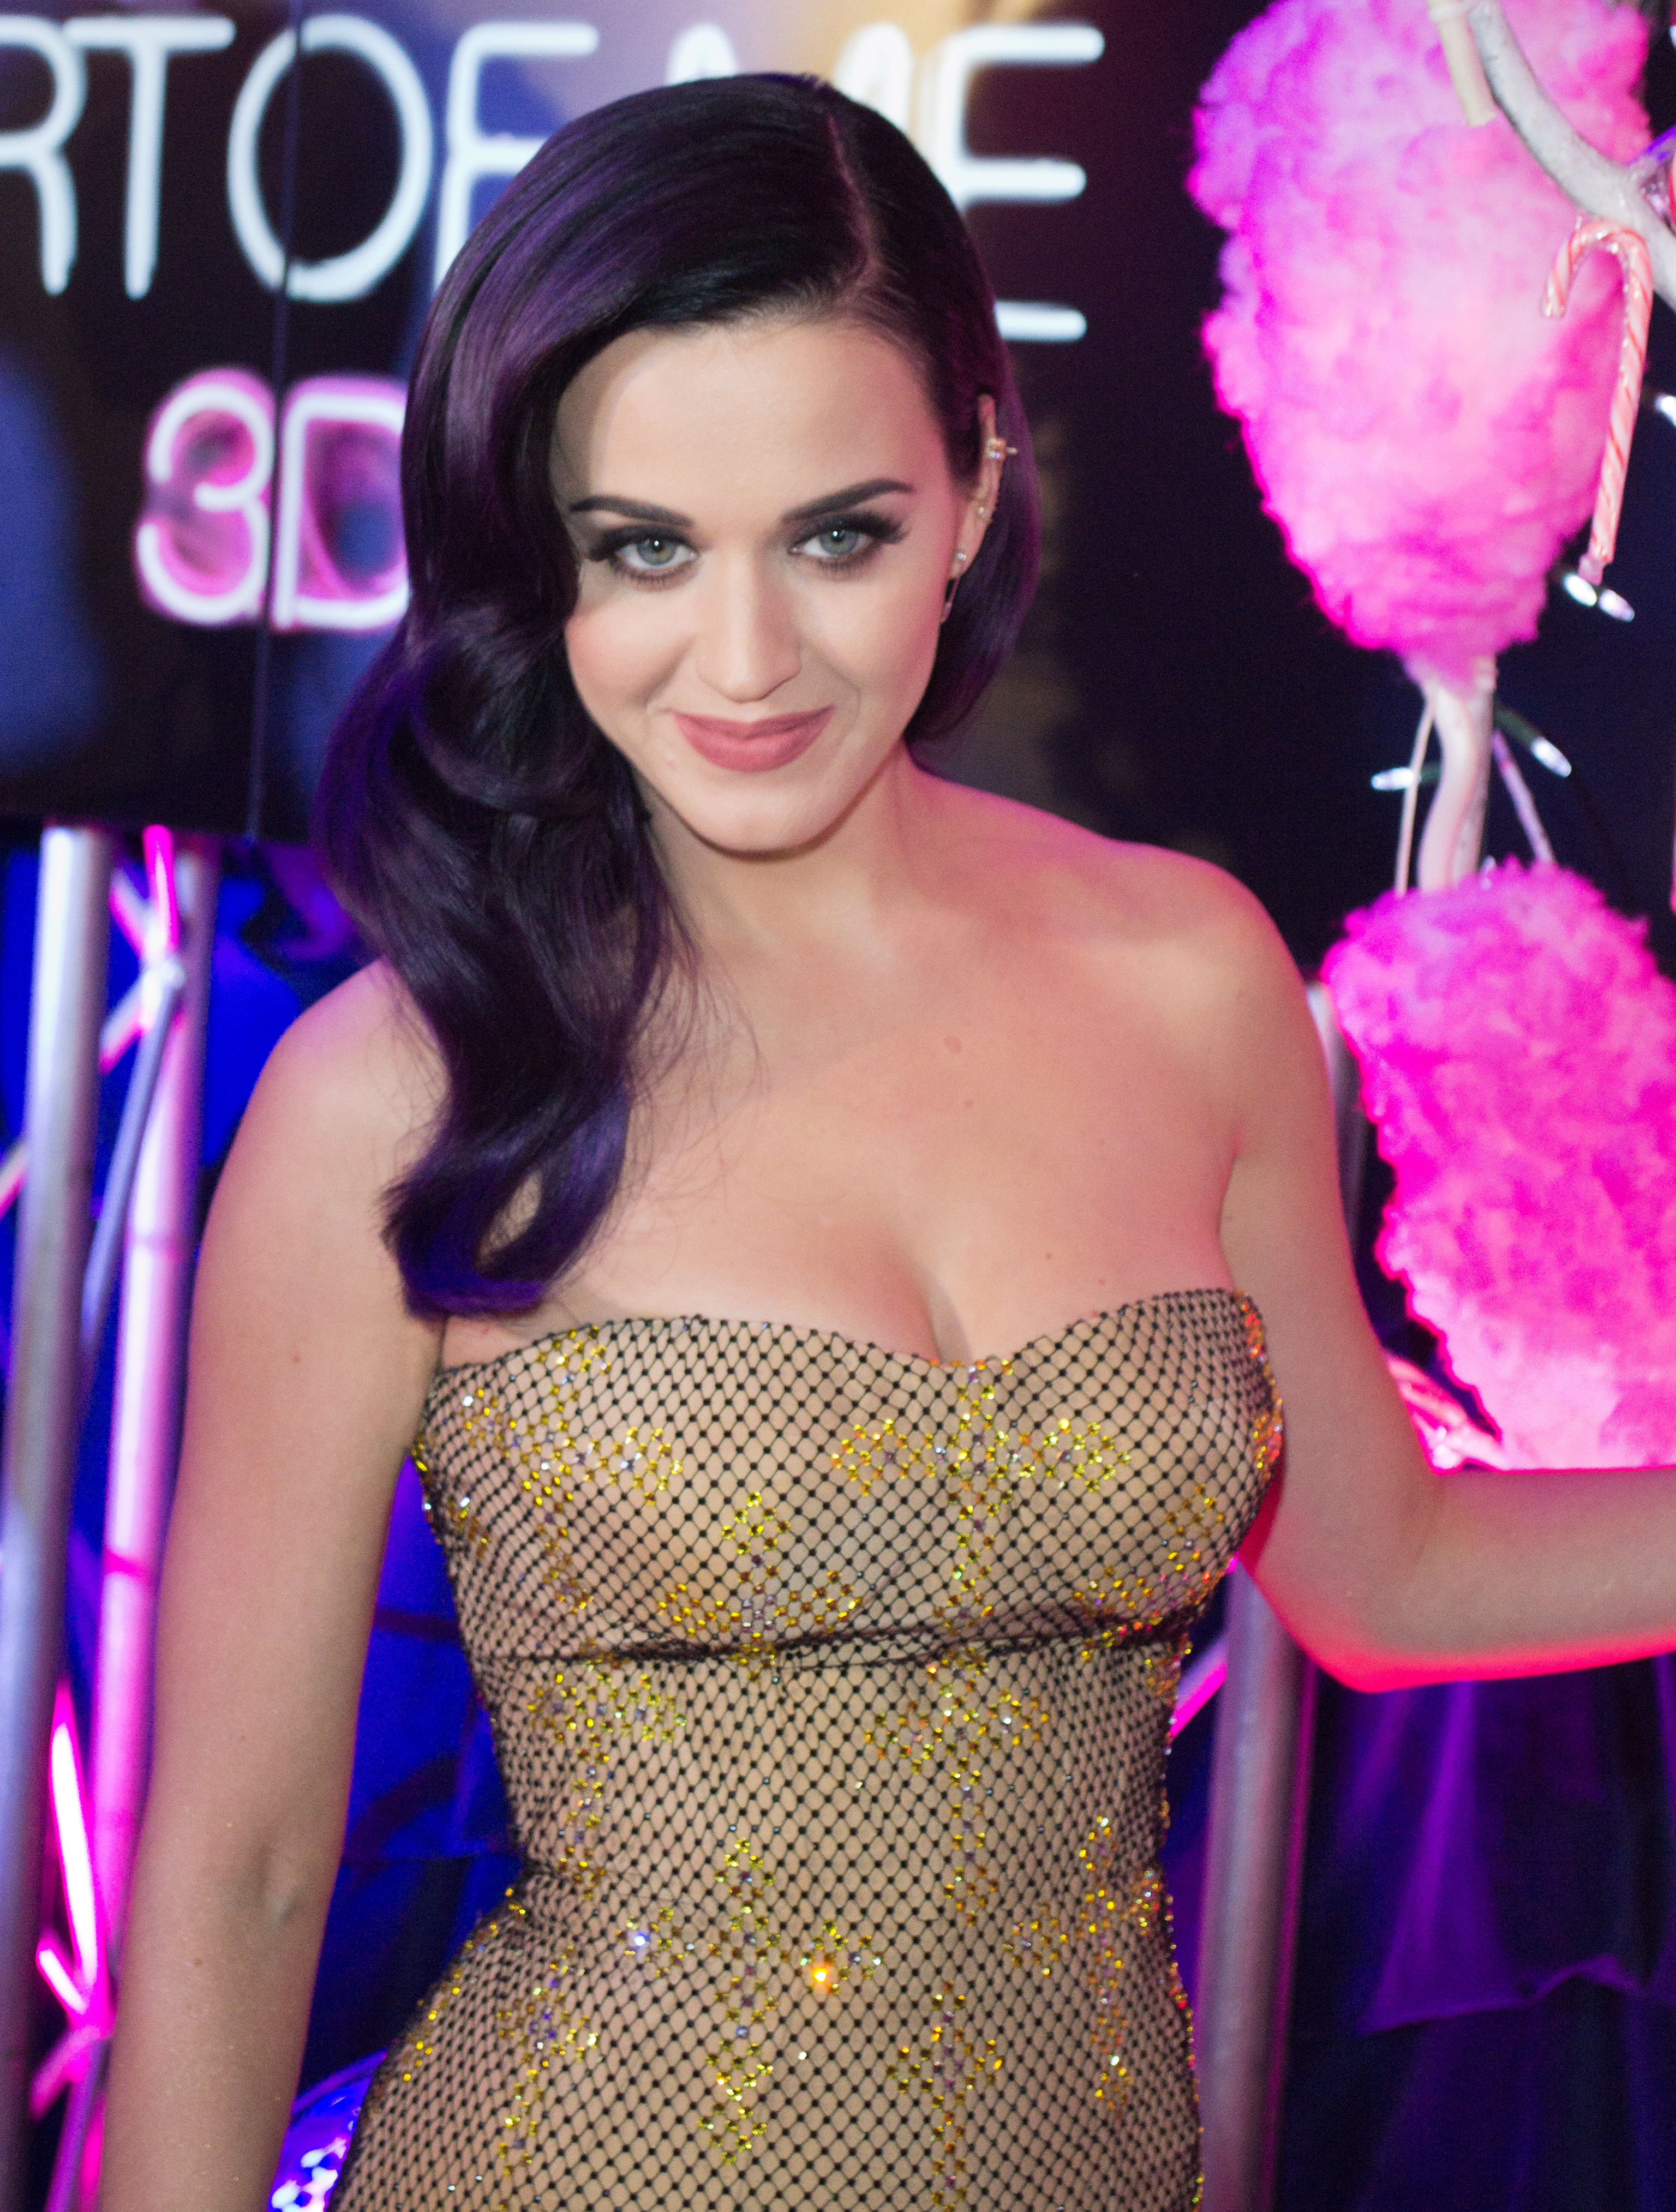 Who is katy perry dating in Australia